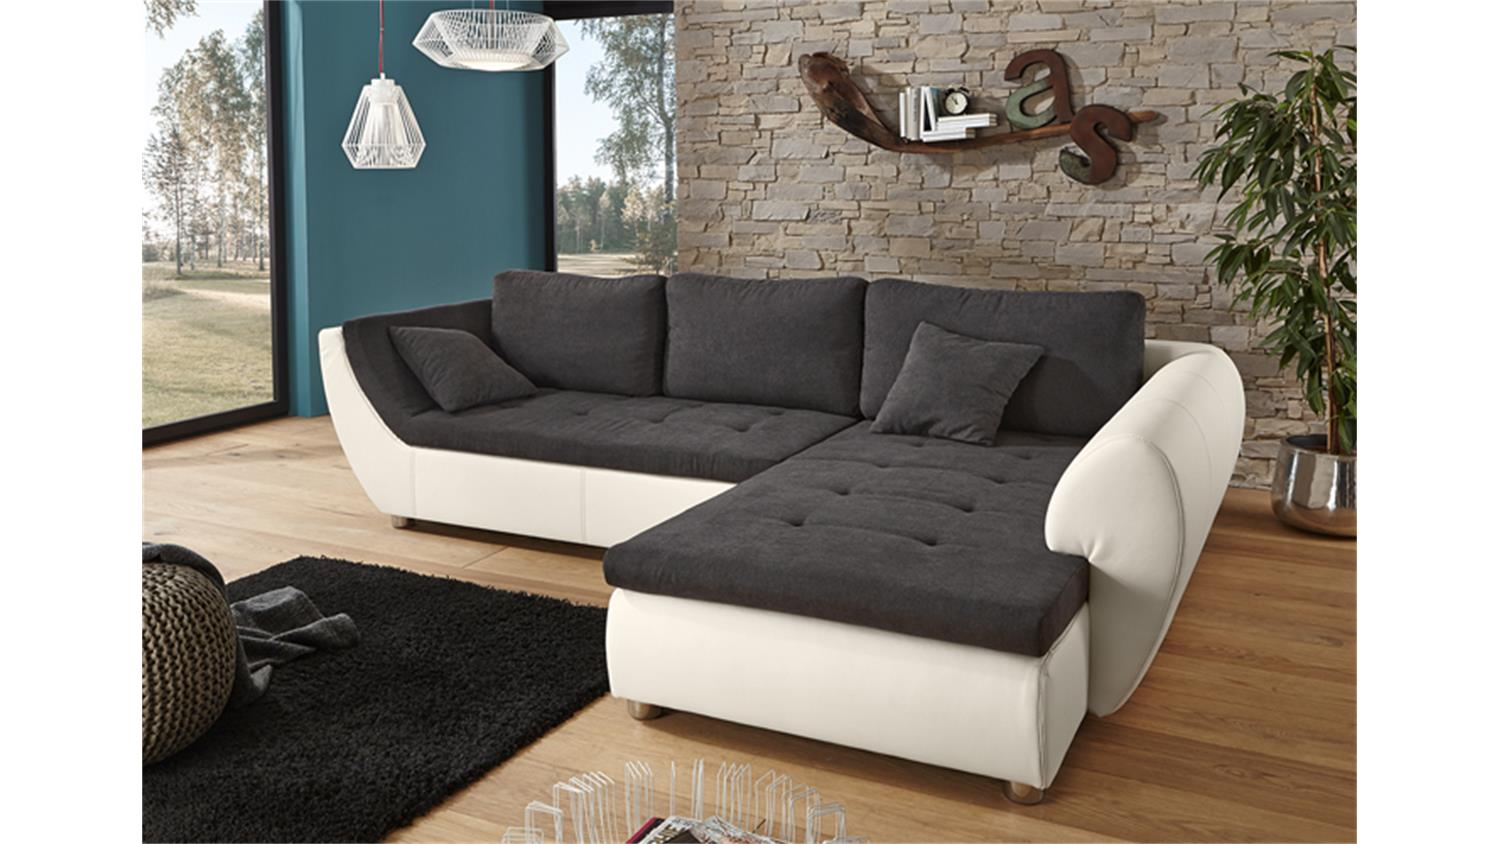 ecksofa wohnlandschaft avus wei microfaser grau. Black Bedroom Furniture Sets. Home Design Ideas